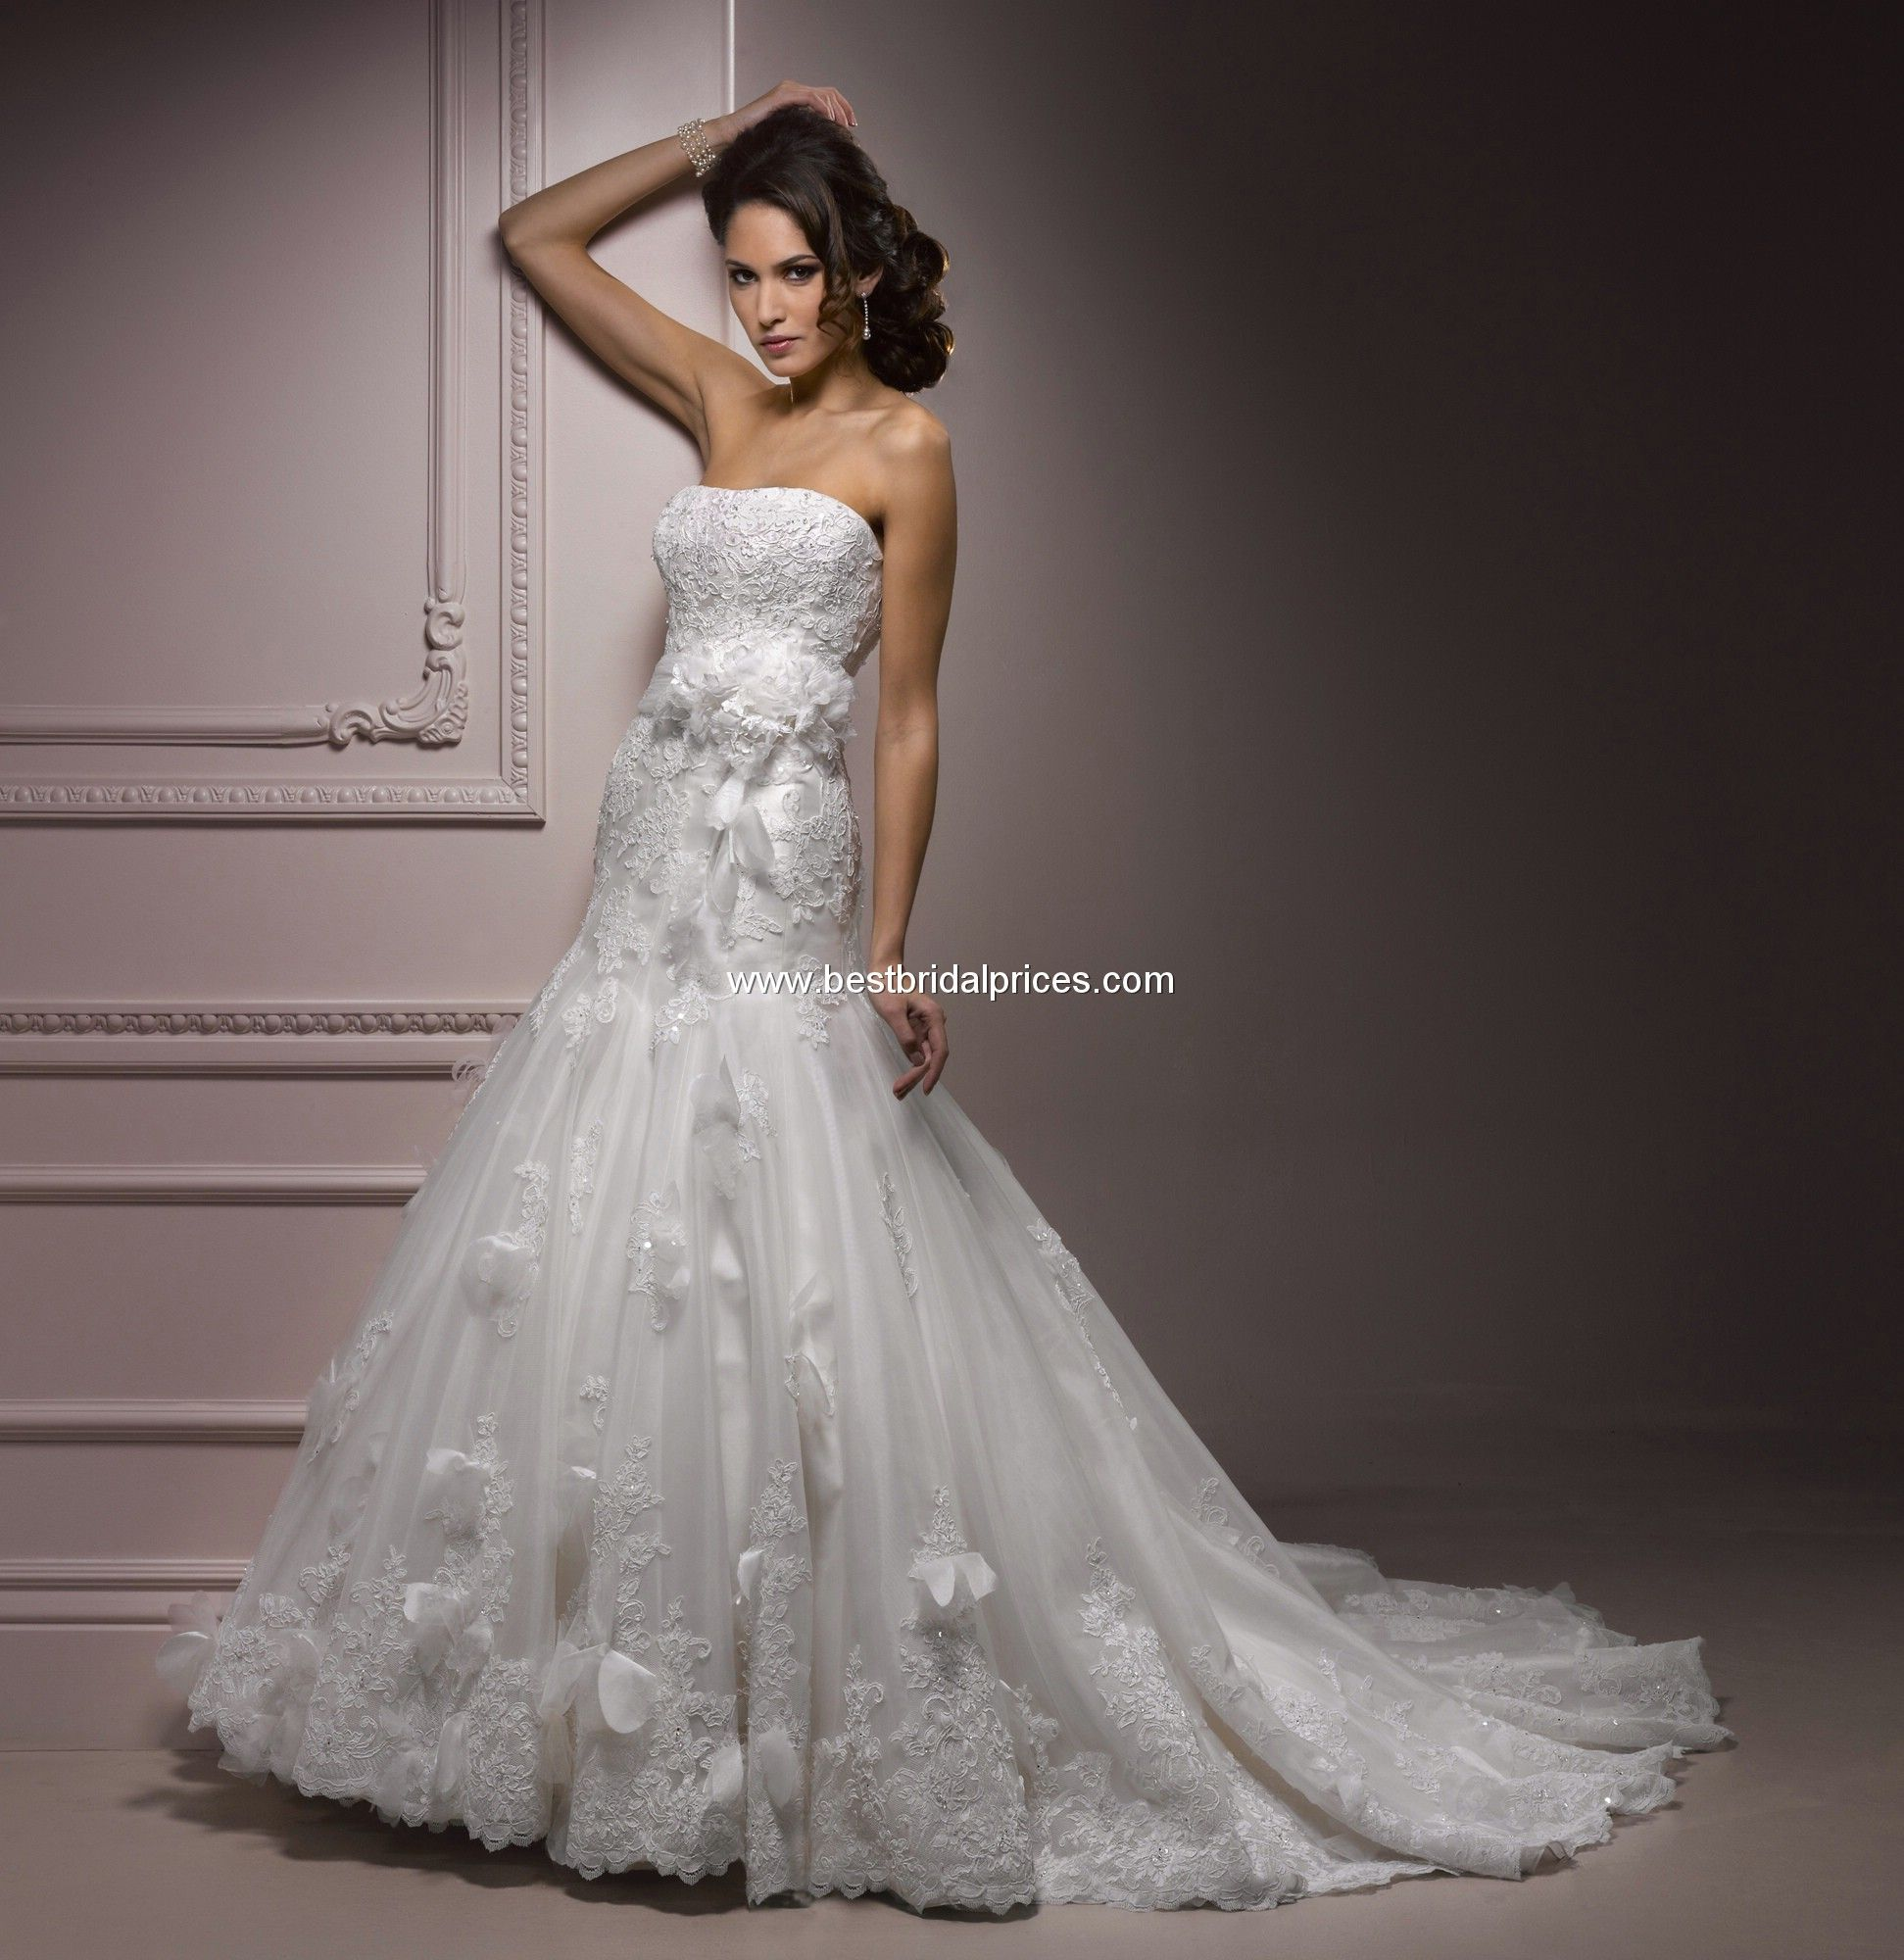 Casual wedding dresses for fuller figures  Maggie Sottero Style Raleigh  Wedding Ideas  Pinterest  Wedding